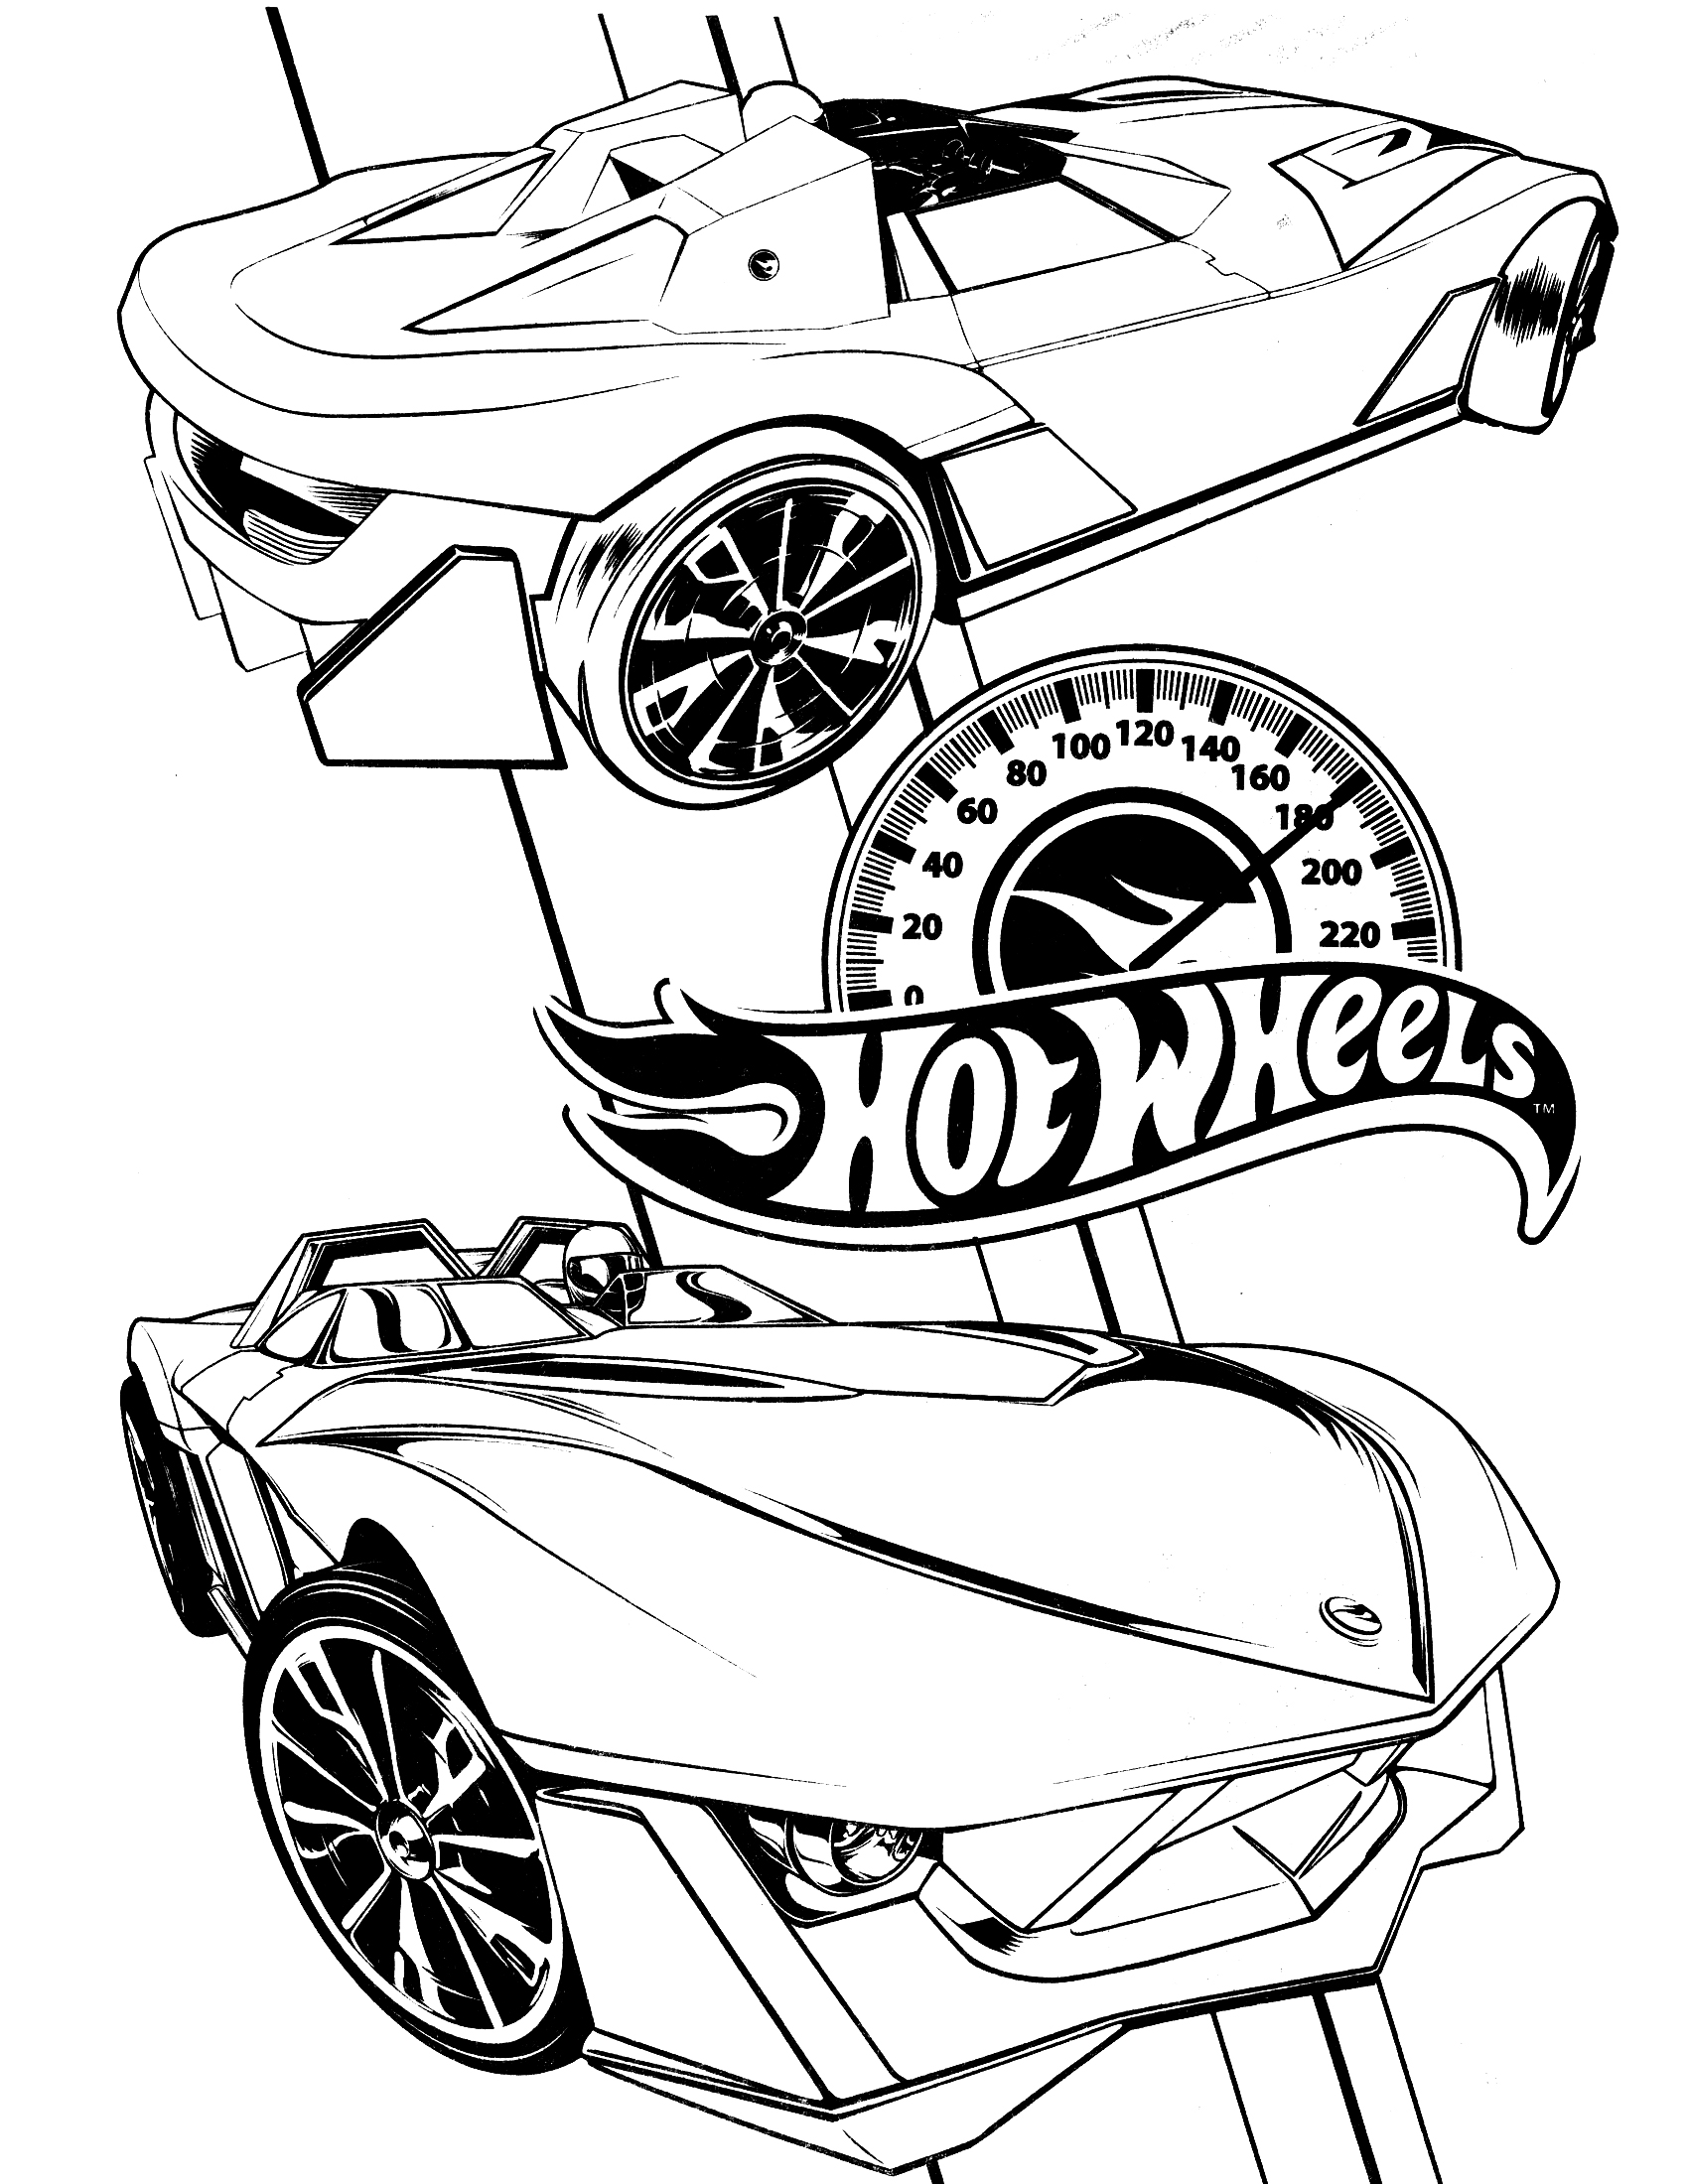 Lego Hot Wheels Coloring Page